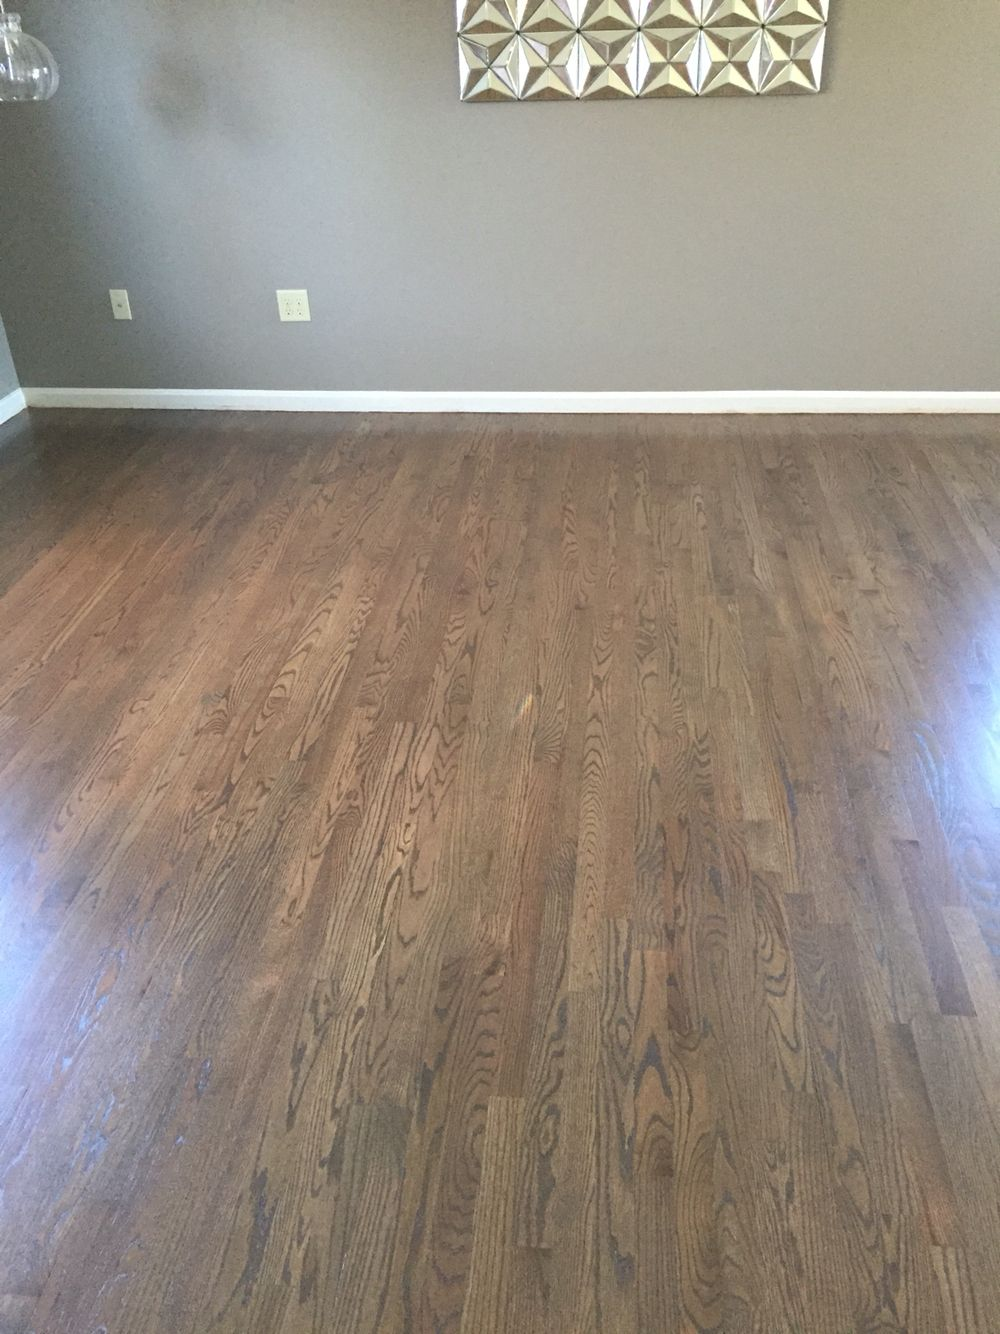 Our refinished wood floors! We created a stain using 3/4